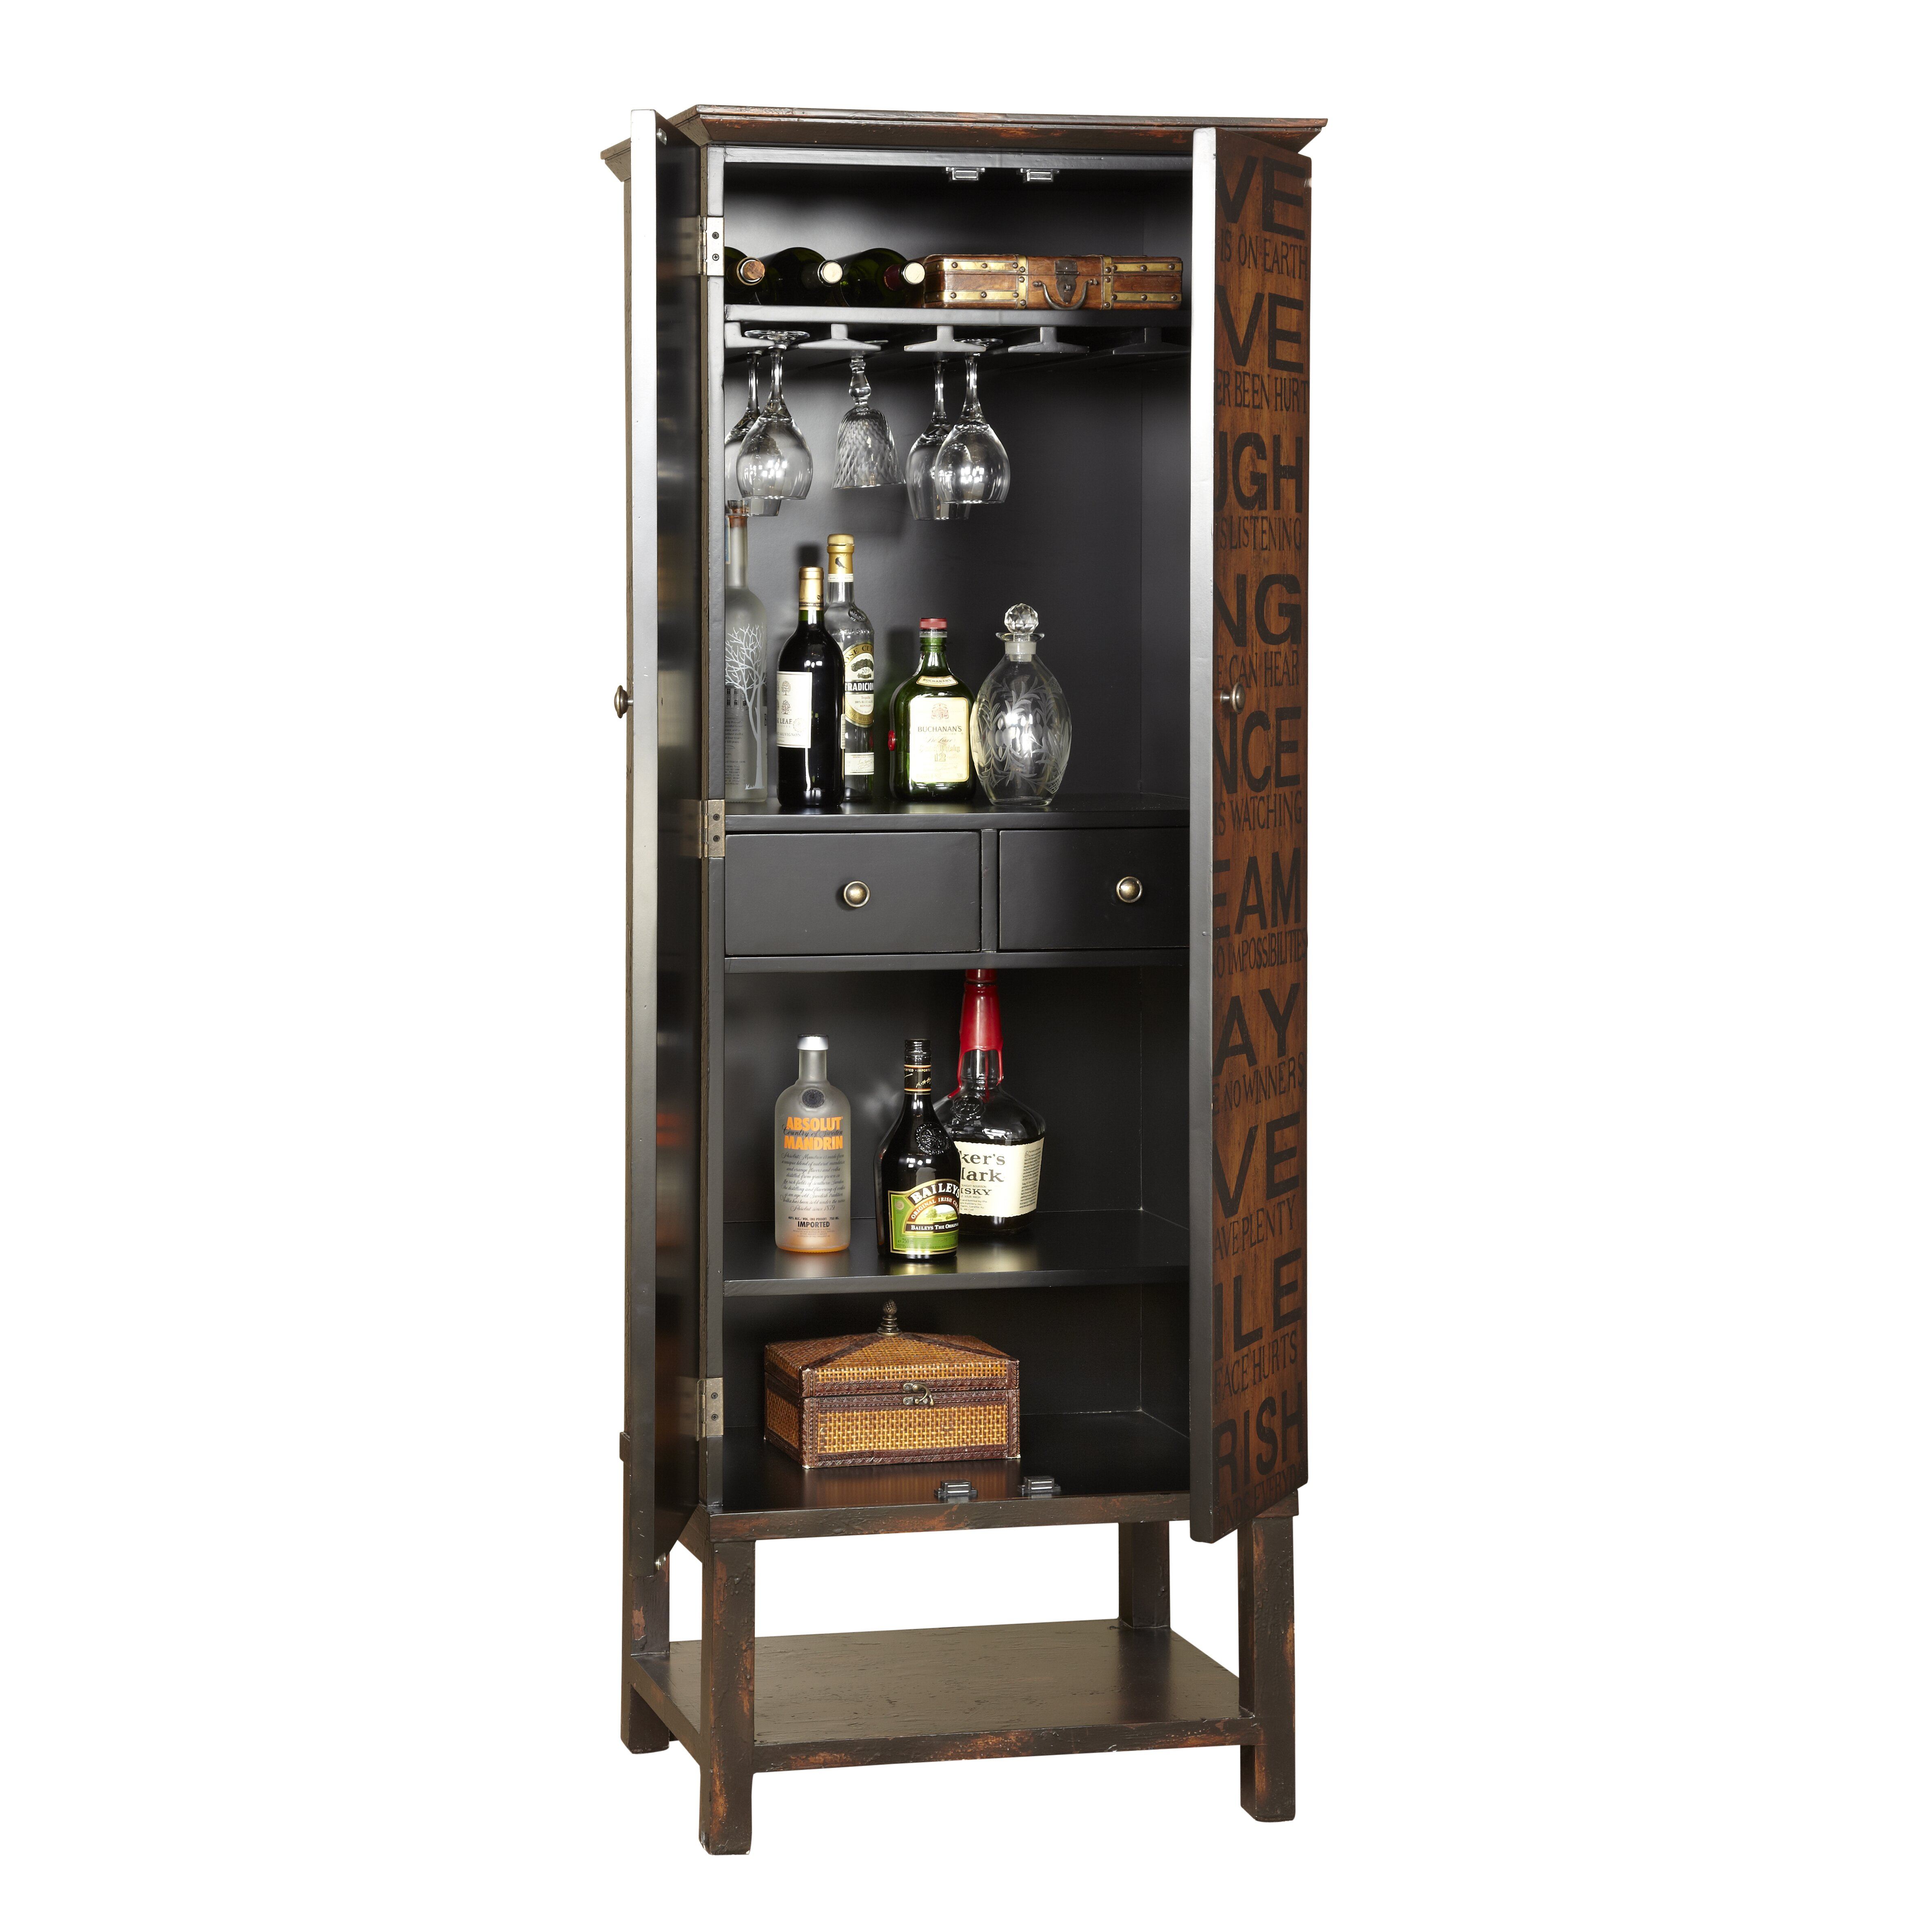 Diamond Vibe Cabinets Red Barrel Studio Firefly Hollow Bar Cabinet With Wine Storage